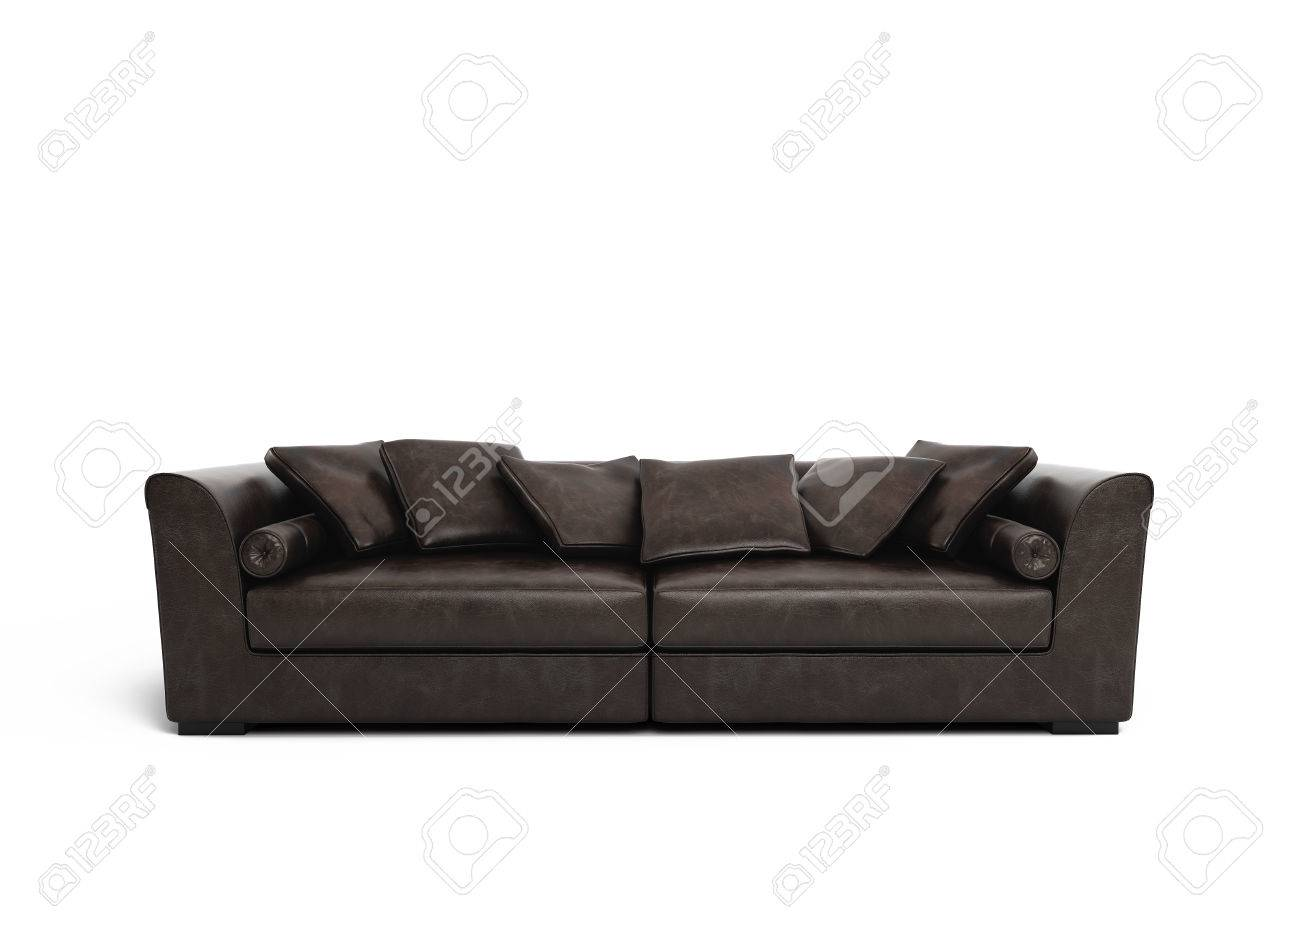 Isolated contemporary elegant dark brown leather sofa Stock Photo - 23962377